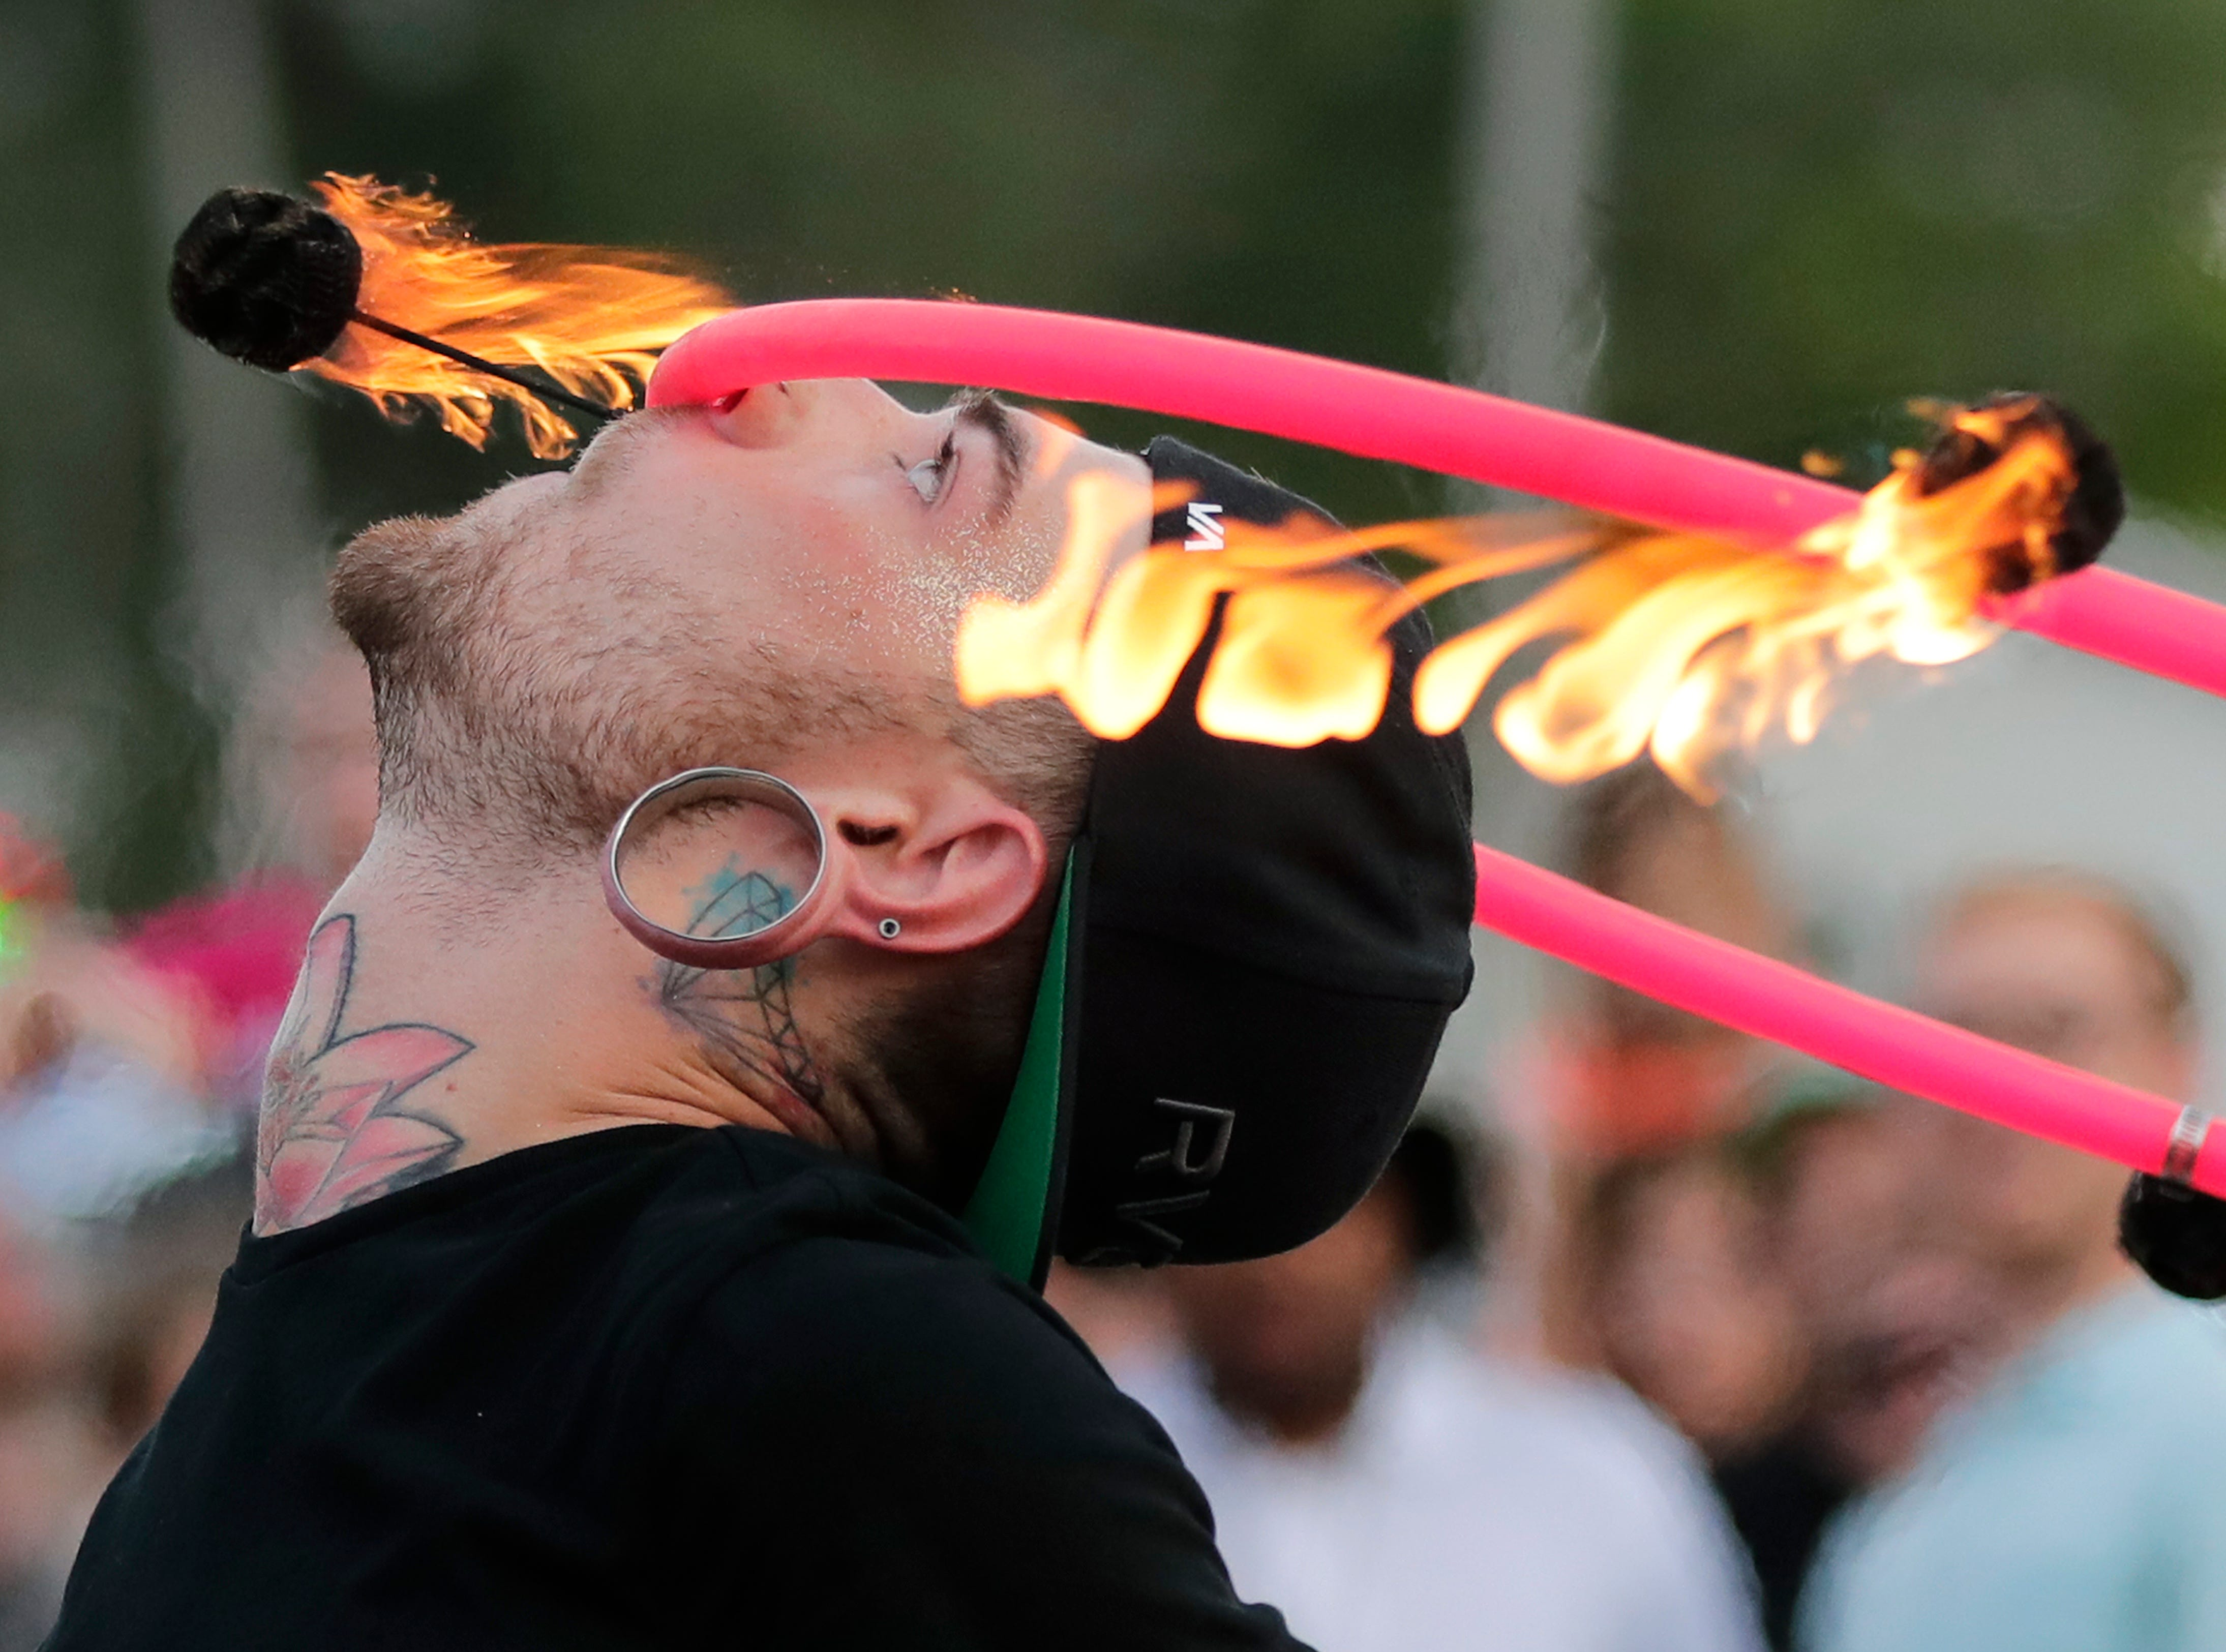 Casey Gottlieb of Appletonduring Bazaar After Dark Thursday, July 19, 2018, in Neenah, Wis. The event is hosted Pulse Young Professionals Network at the Fox Cities Chamber. Gottlieb is a crew member of Fox Valley Fire and Flow Collective.